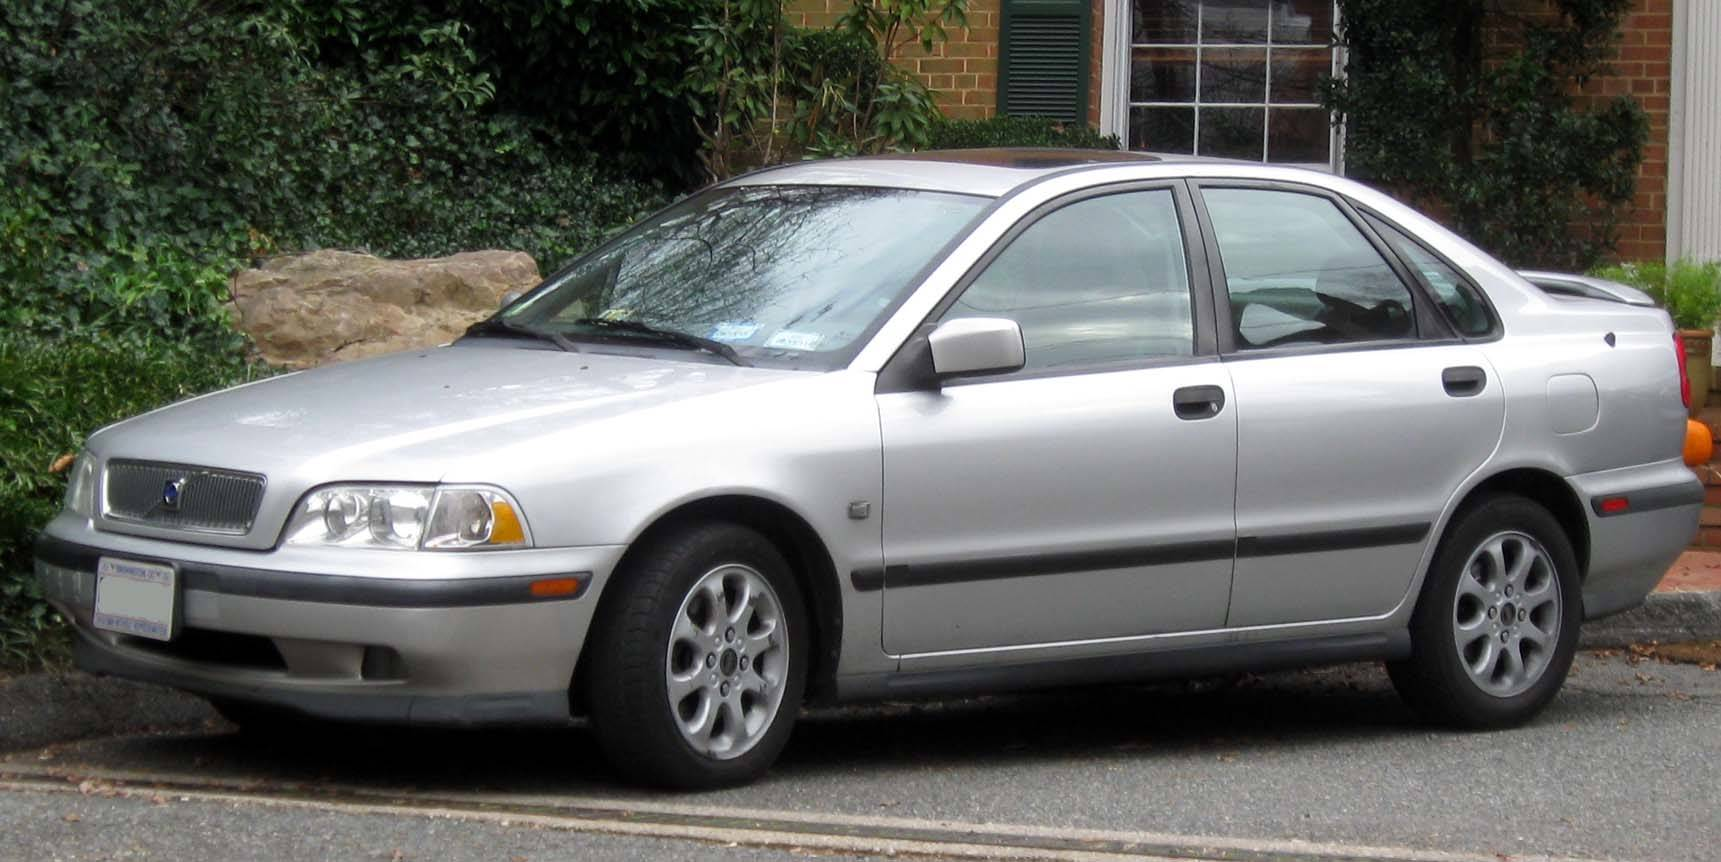 2005 volvo s40 2.4 i owners manual